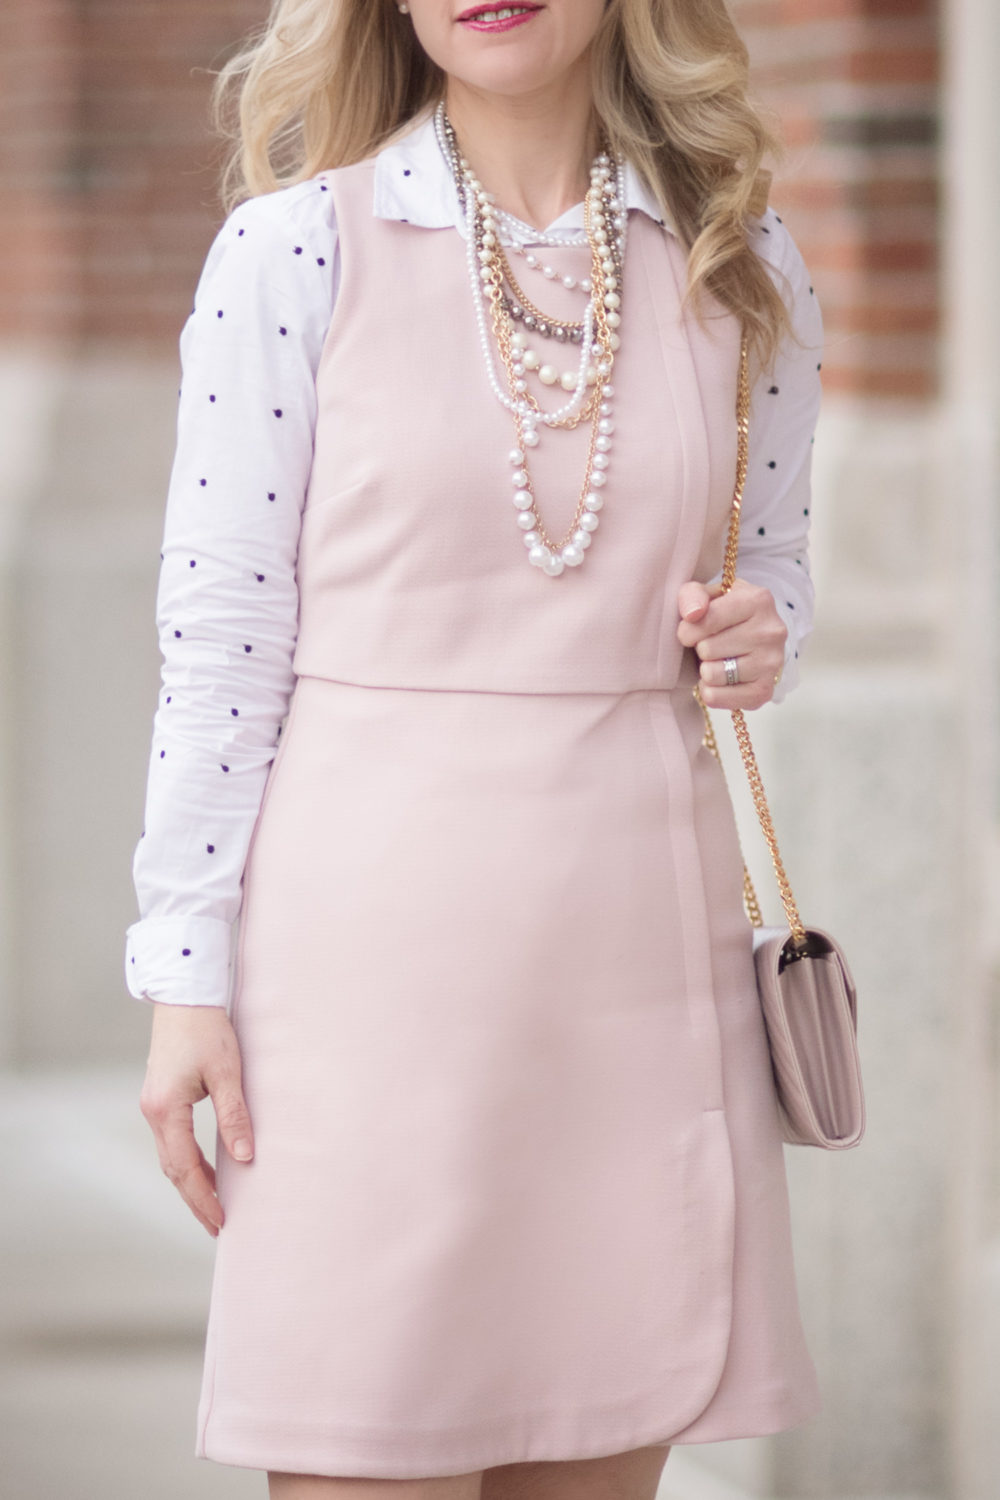 Petite Fashion and Style Blog | Fashion for Petite Women | Pink Sheath Dress | Polka Dot Blouse | YSL Wallet on Chain | How to Wear a dress in the Winter